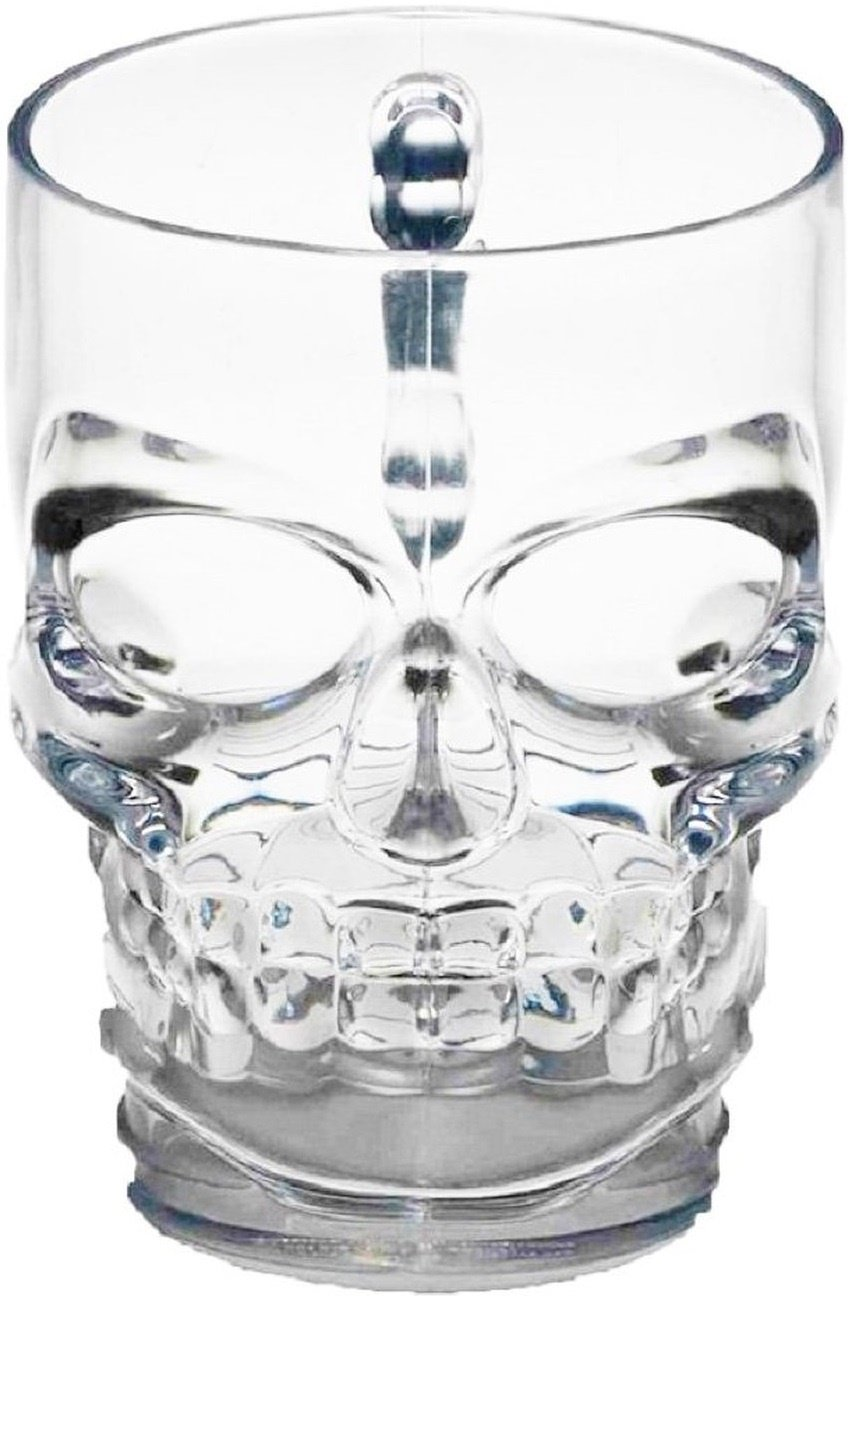 Circleware Skull Face Glass Beer Mug Drinking Glasses with Handle, Set of 2, Heavy Base Funny Entertainment Glassware for Water Juice and Bar Liquor Dining Decor Beverage Gifts, 18 oz, 2pc-Skull